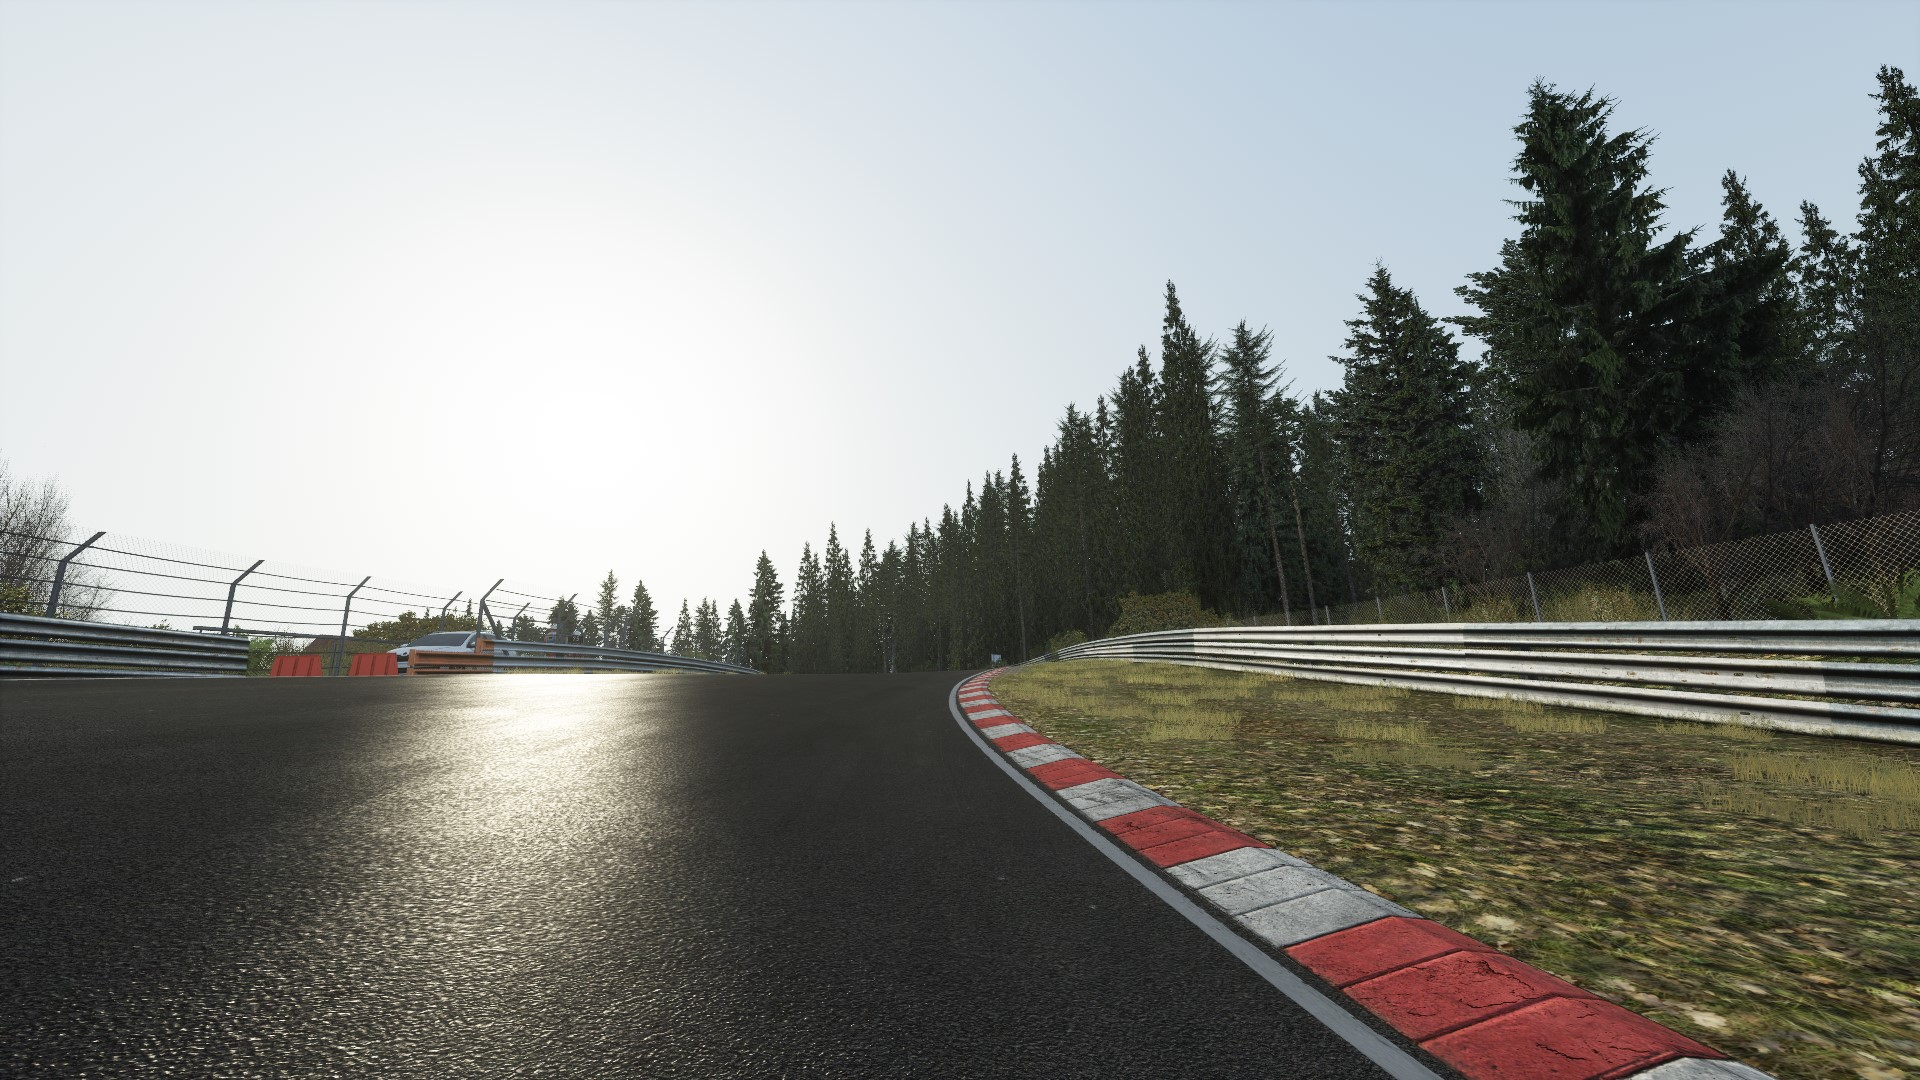 Screenshot_ks_bmw_m235i_racing_ks_nordschleife_10-1-118-4-47-40.jpg